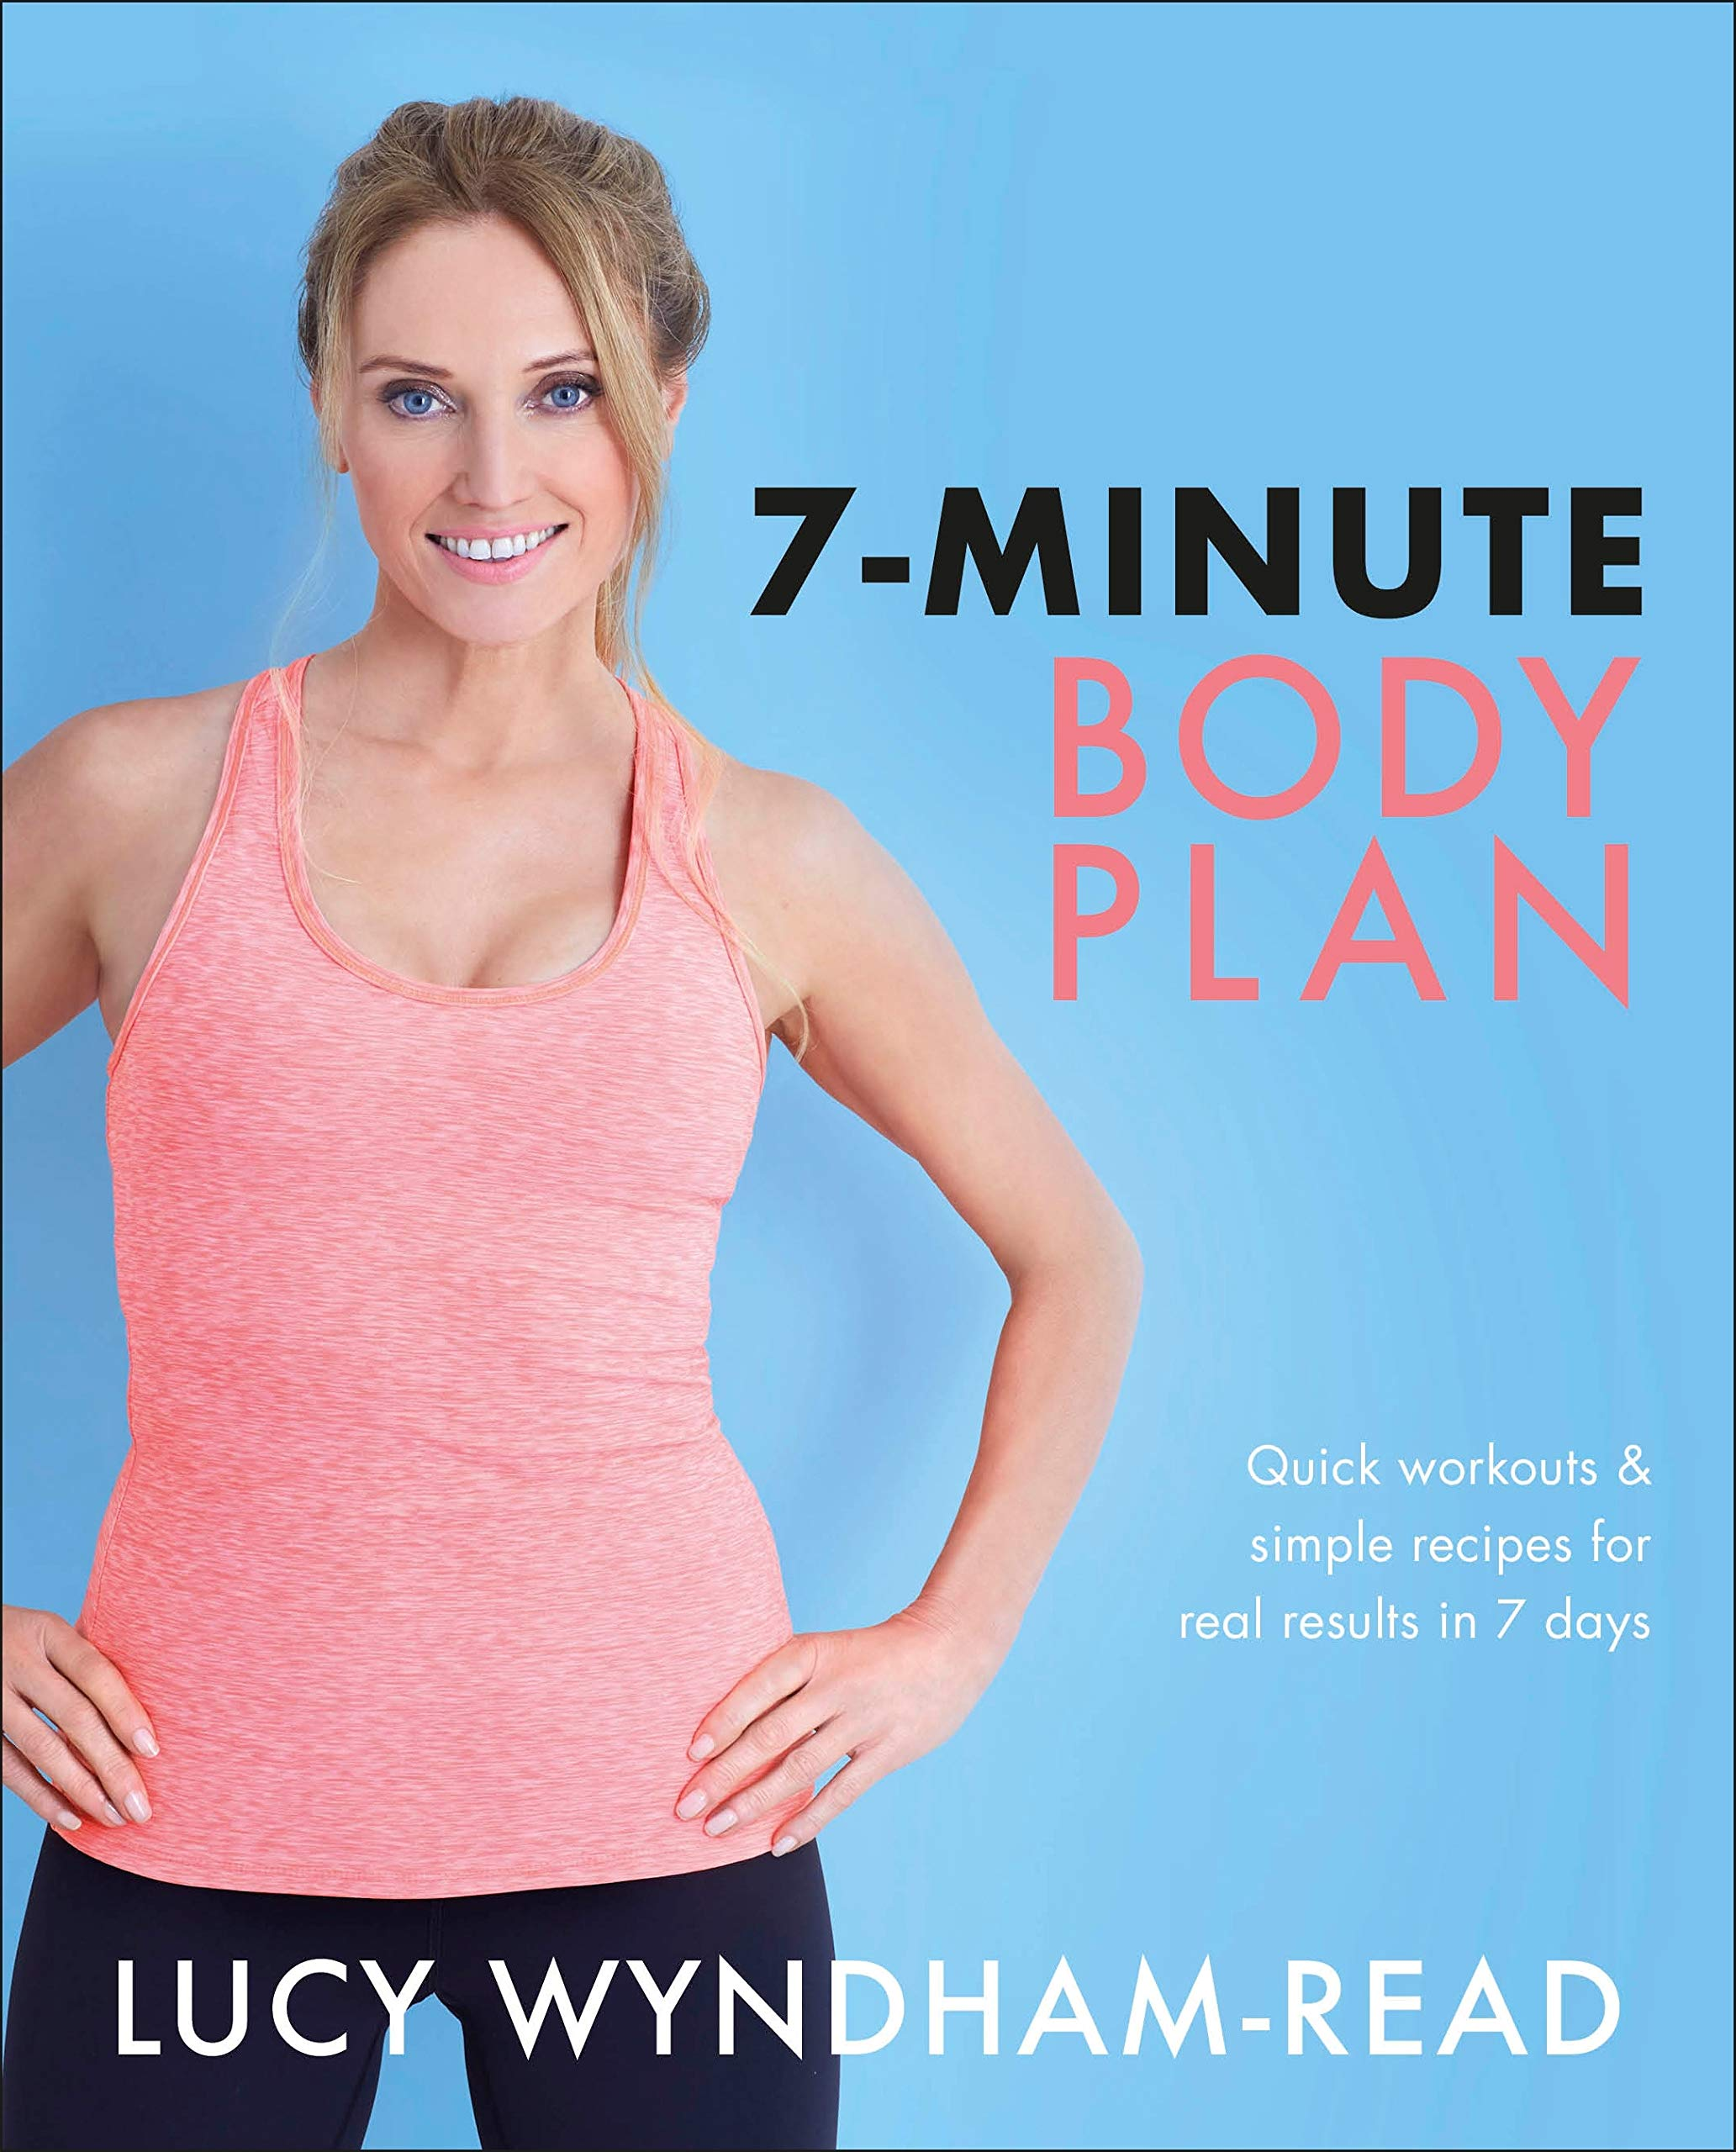 7-Minute Body Plan: Quick workouts & simple recipes for real results in 7  days: Amazon.co.uk: Wyndham-Read, Lucy: 9780241430033: Books